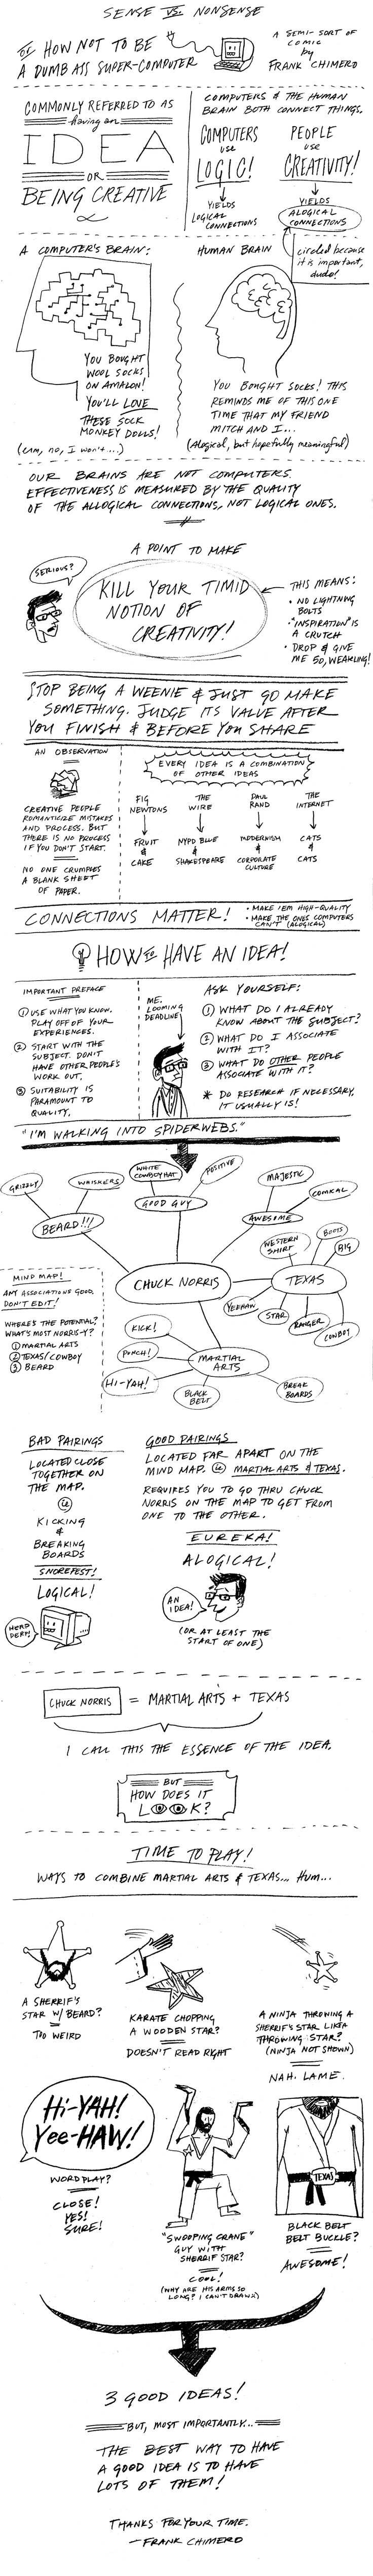 Frank Chimero- a beautiful essay on 'How to Have an Idea' It is set up almost like a sequential art piece aka comic.